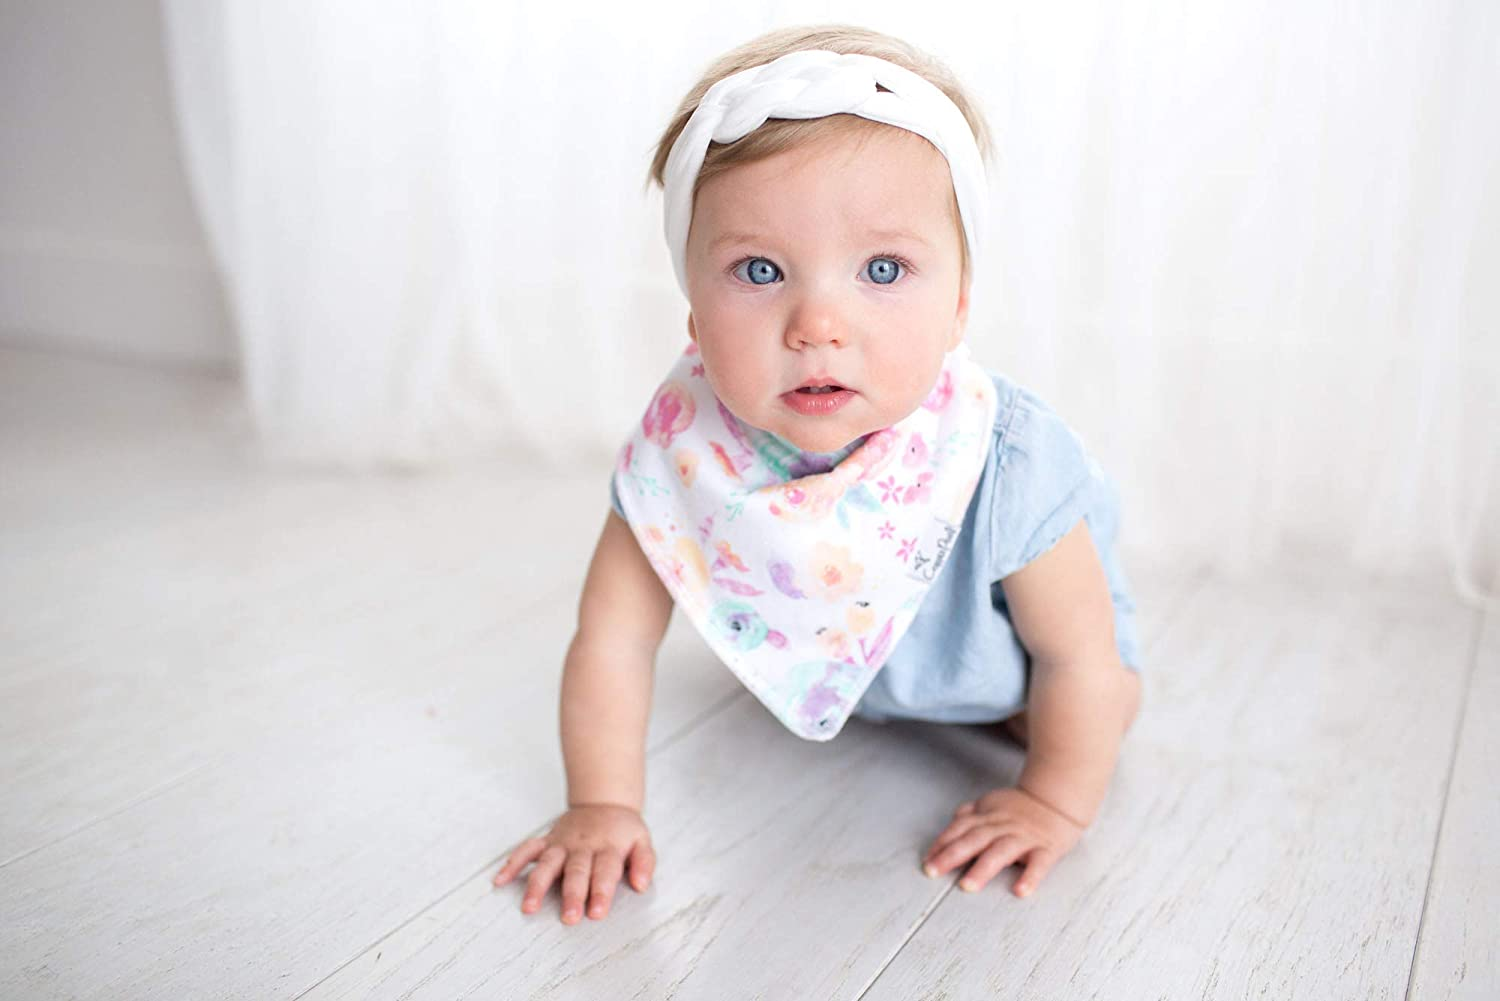 """Baby Bandana Drool Bibs for Drooling and Teething 4 Pack Gift Set for Girls /""""Bloom Set/"""" by Copper Pearl"""